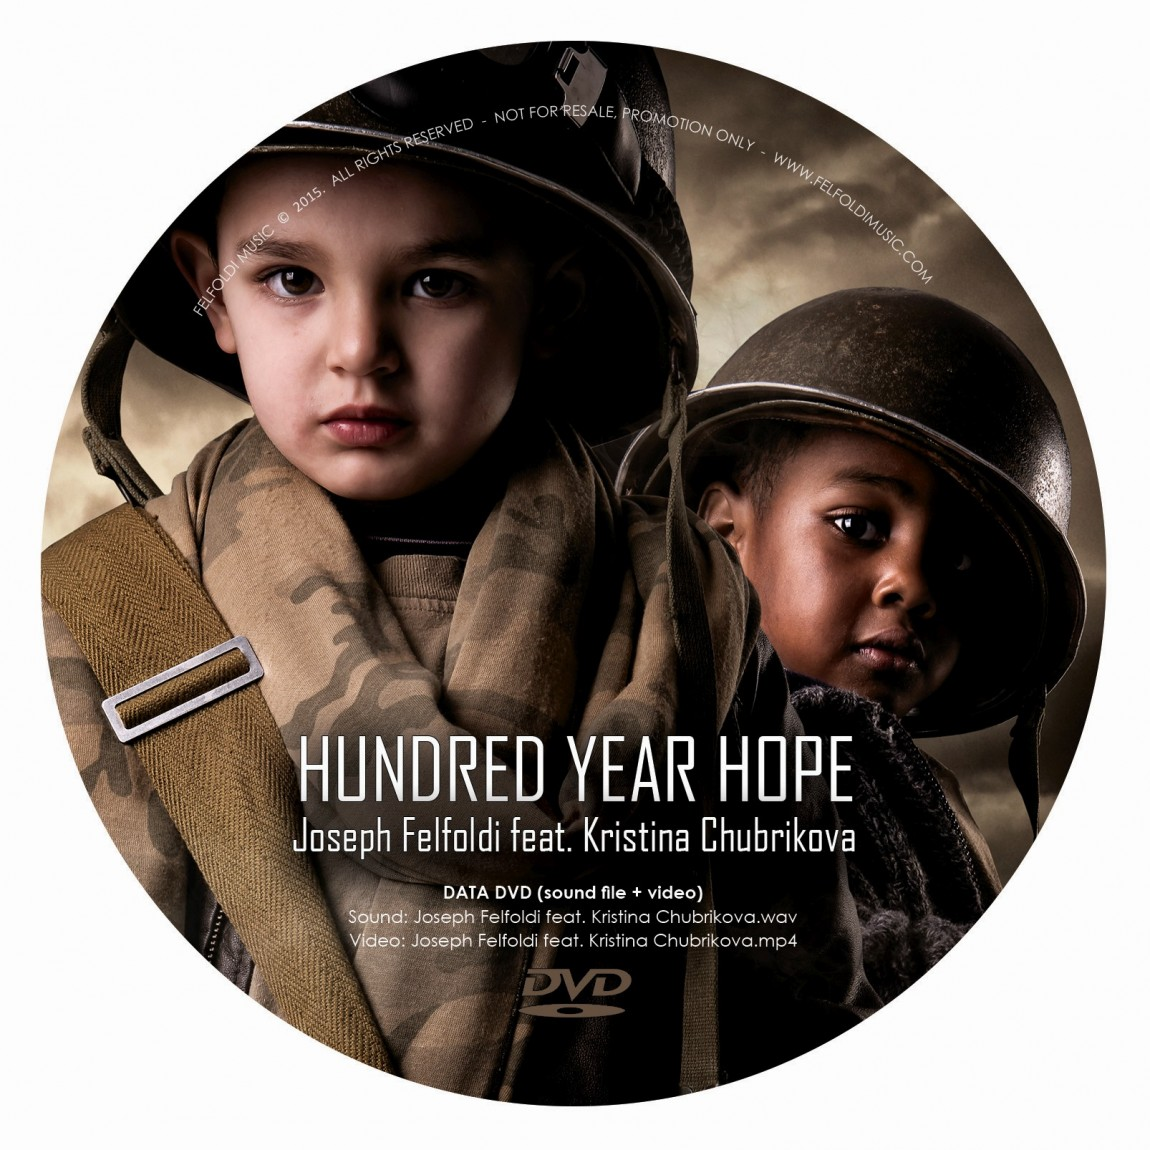 Hundred year hope DVD